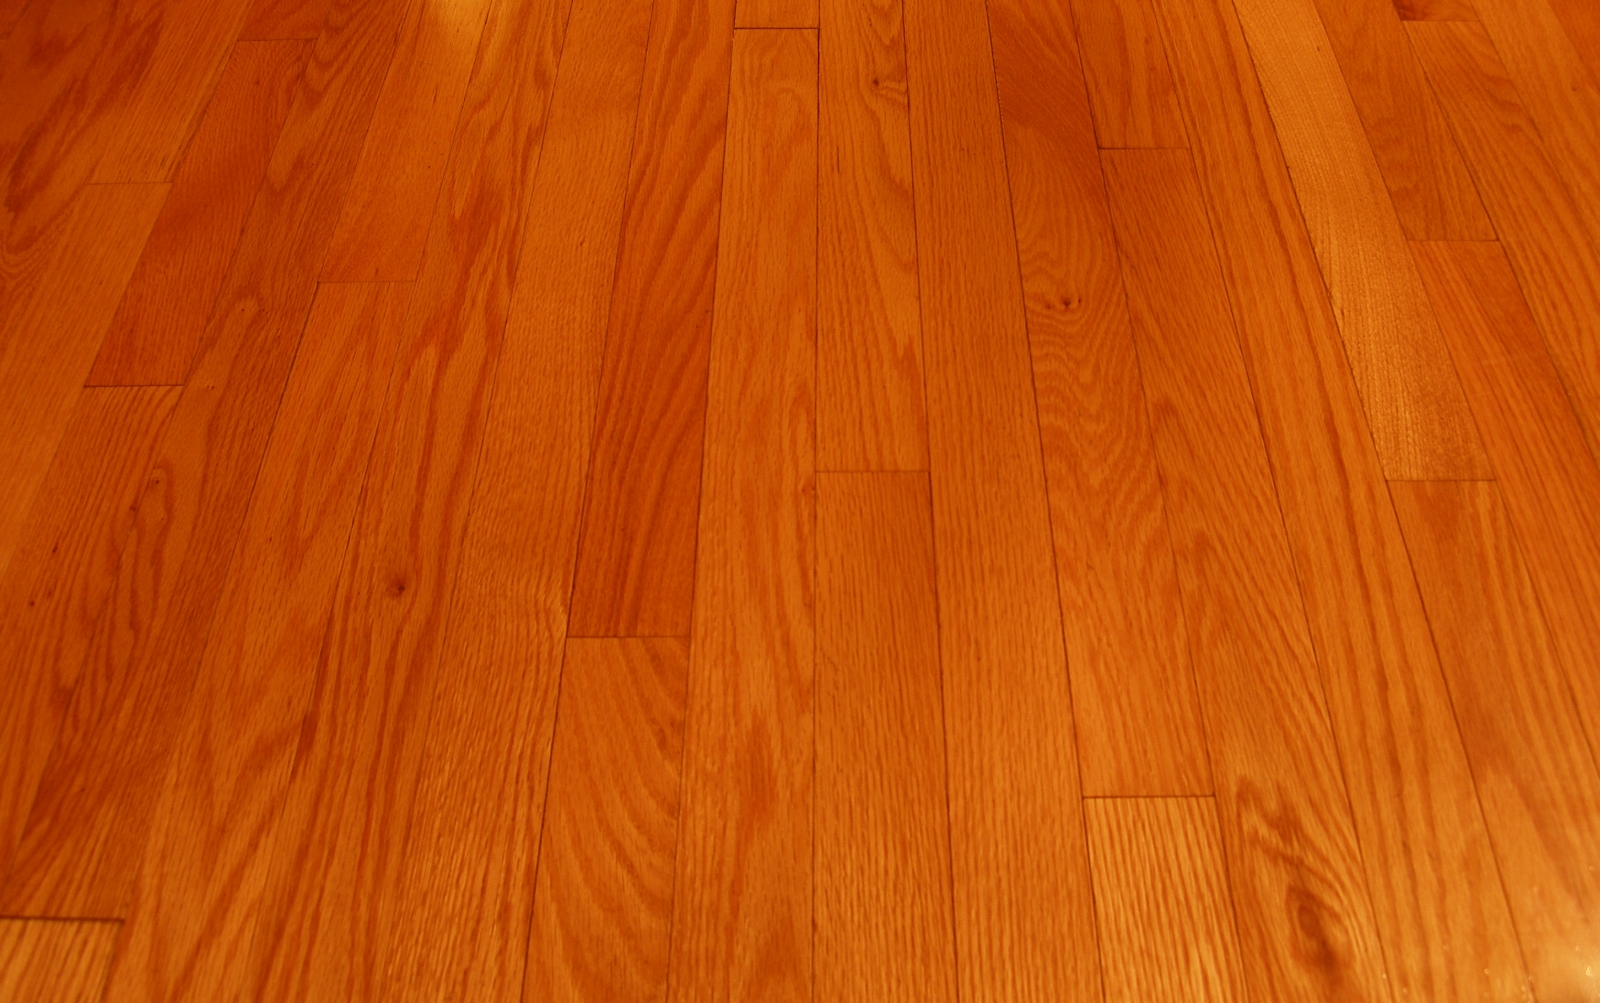 Unique wood floors choosing between solid vs engineered for Hardwood laminate